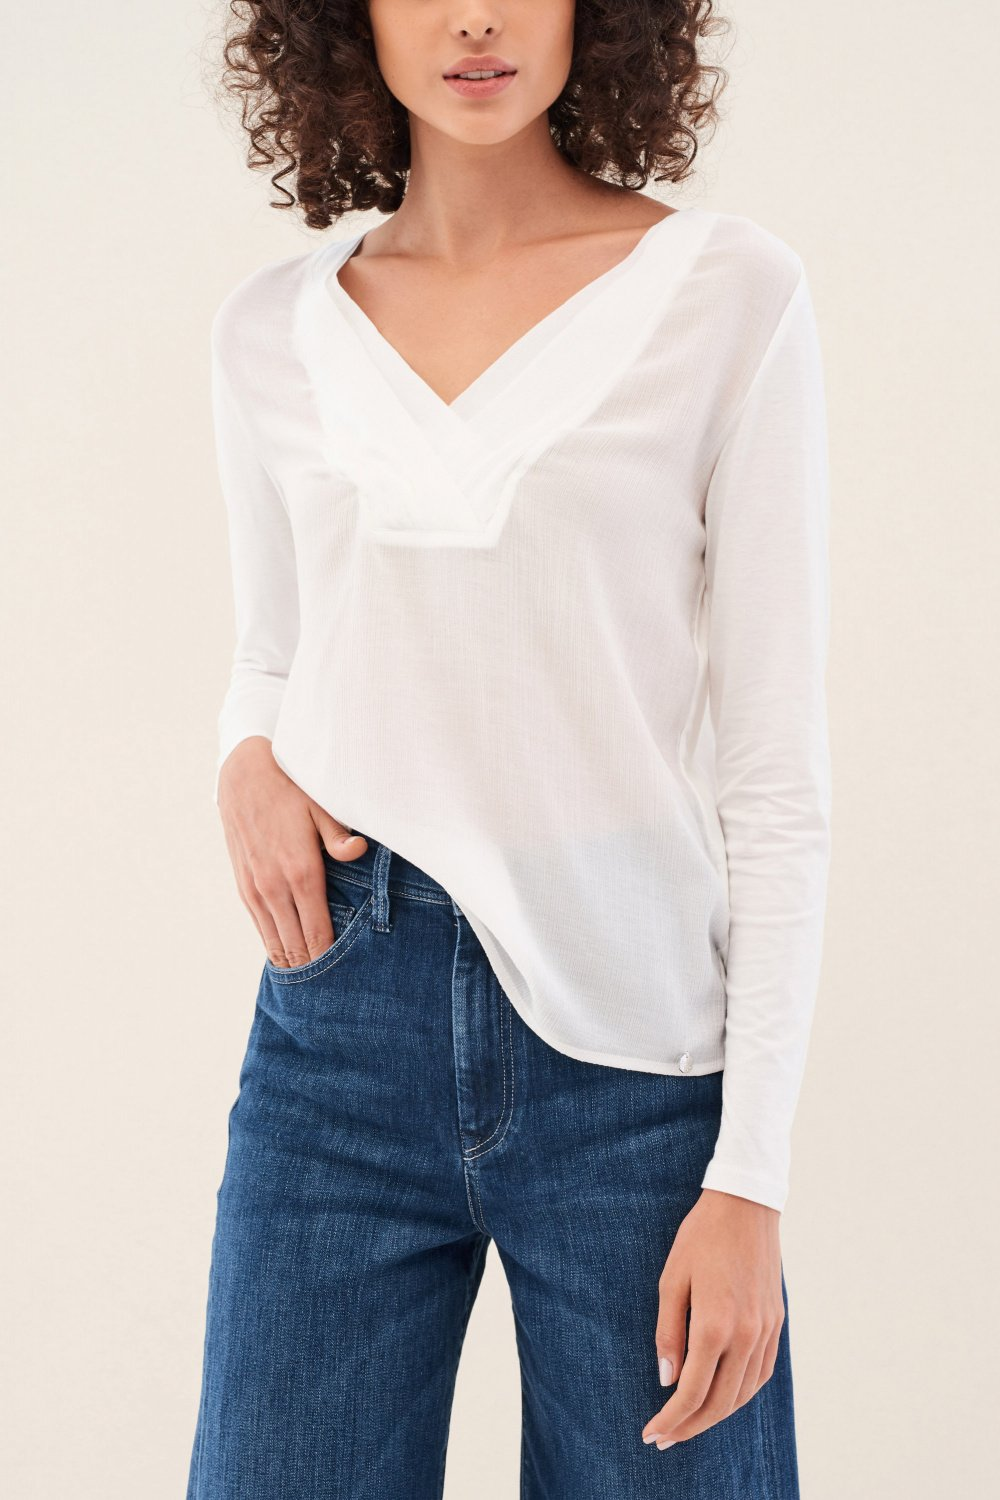 Blouse with fabric detail on front - Salsa